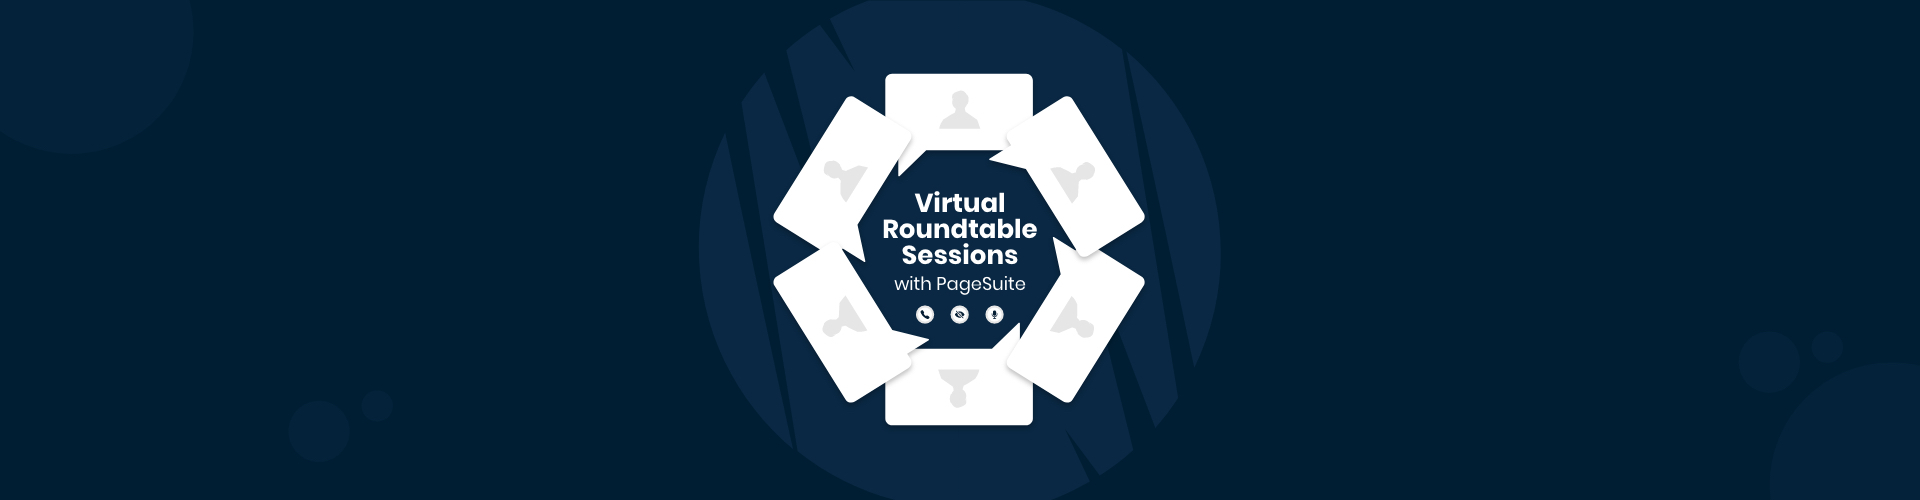 Header image of Virtual Roundtable Sessions with PageSuite